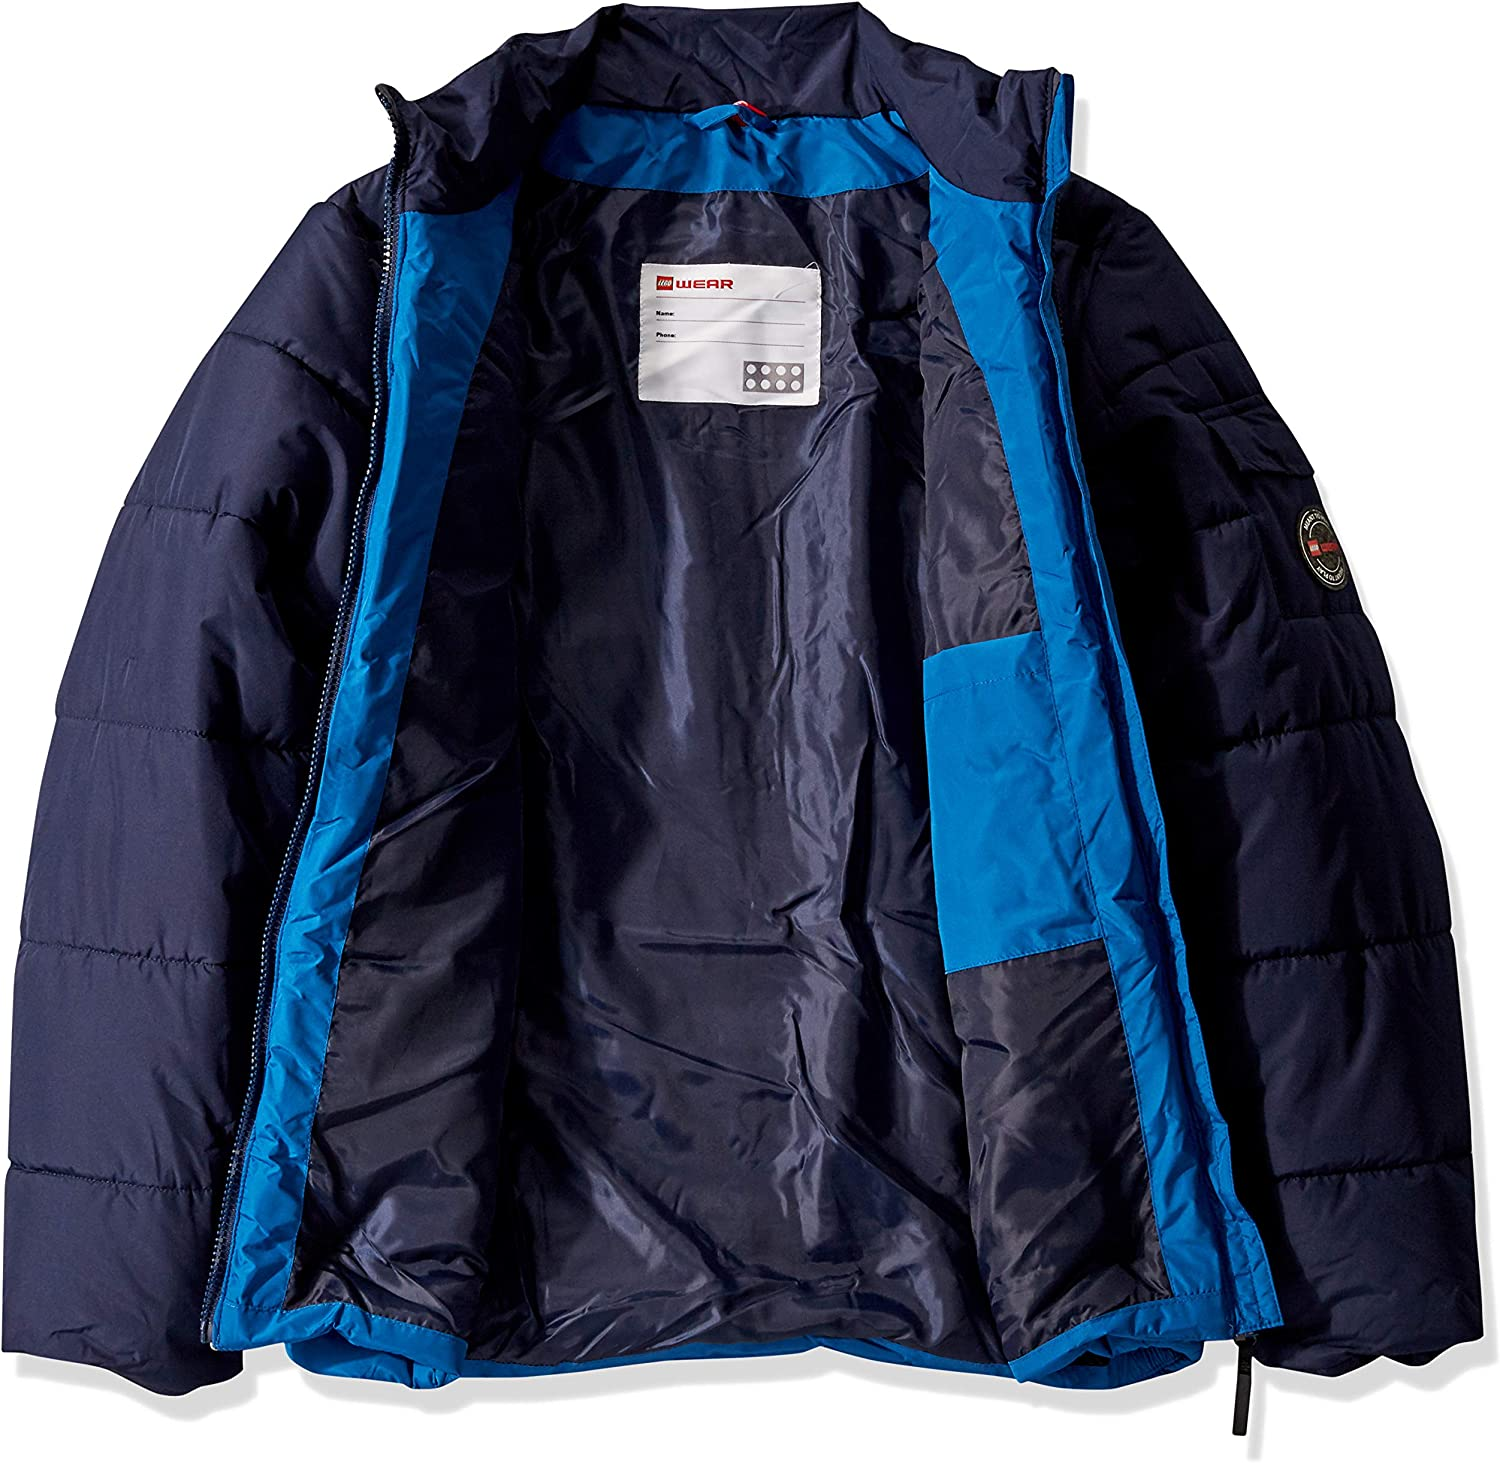 LEGO Wear Kids Jacket with Adjustable Cuffs and Mobile Phone Pocket